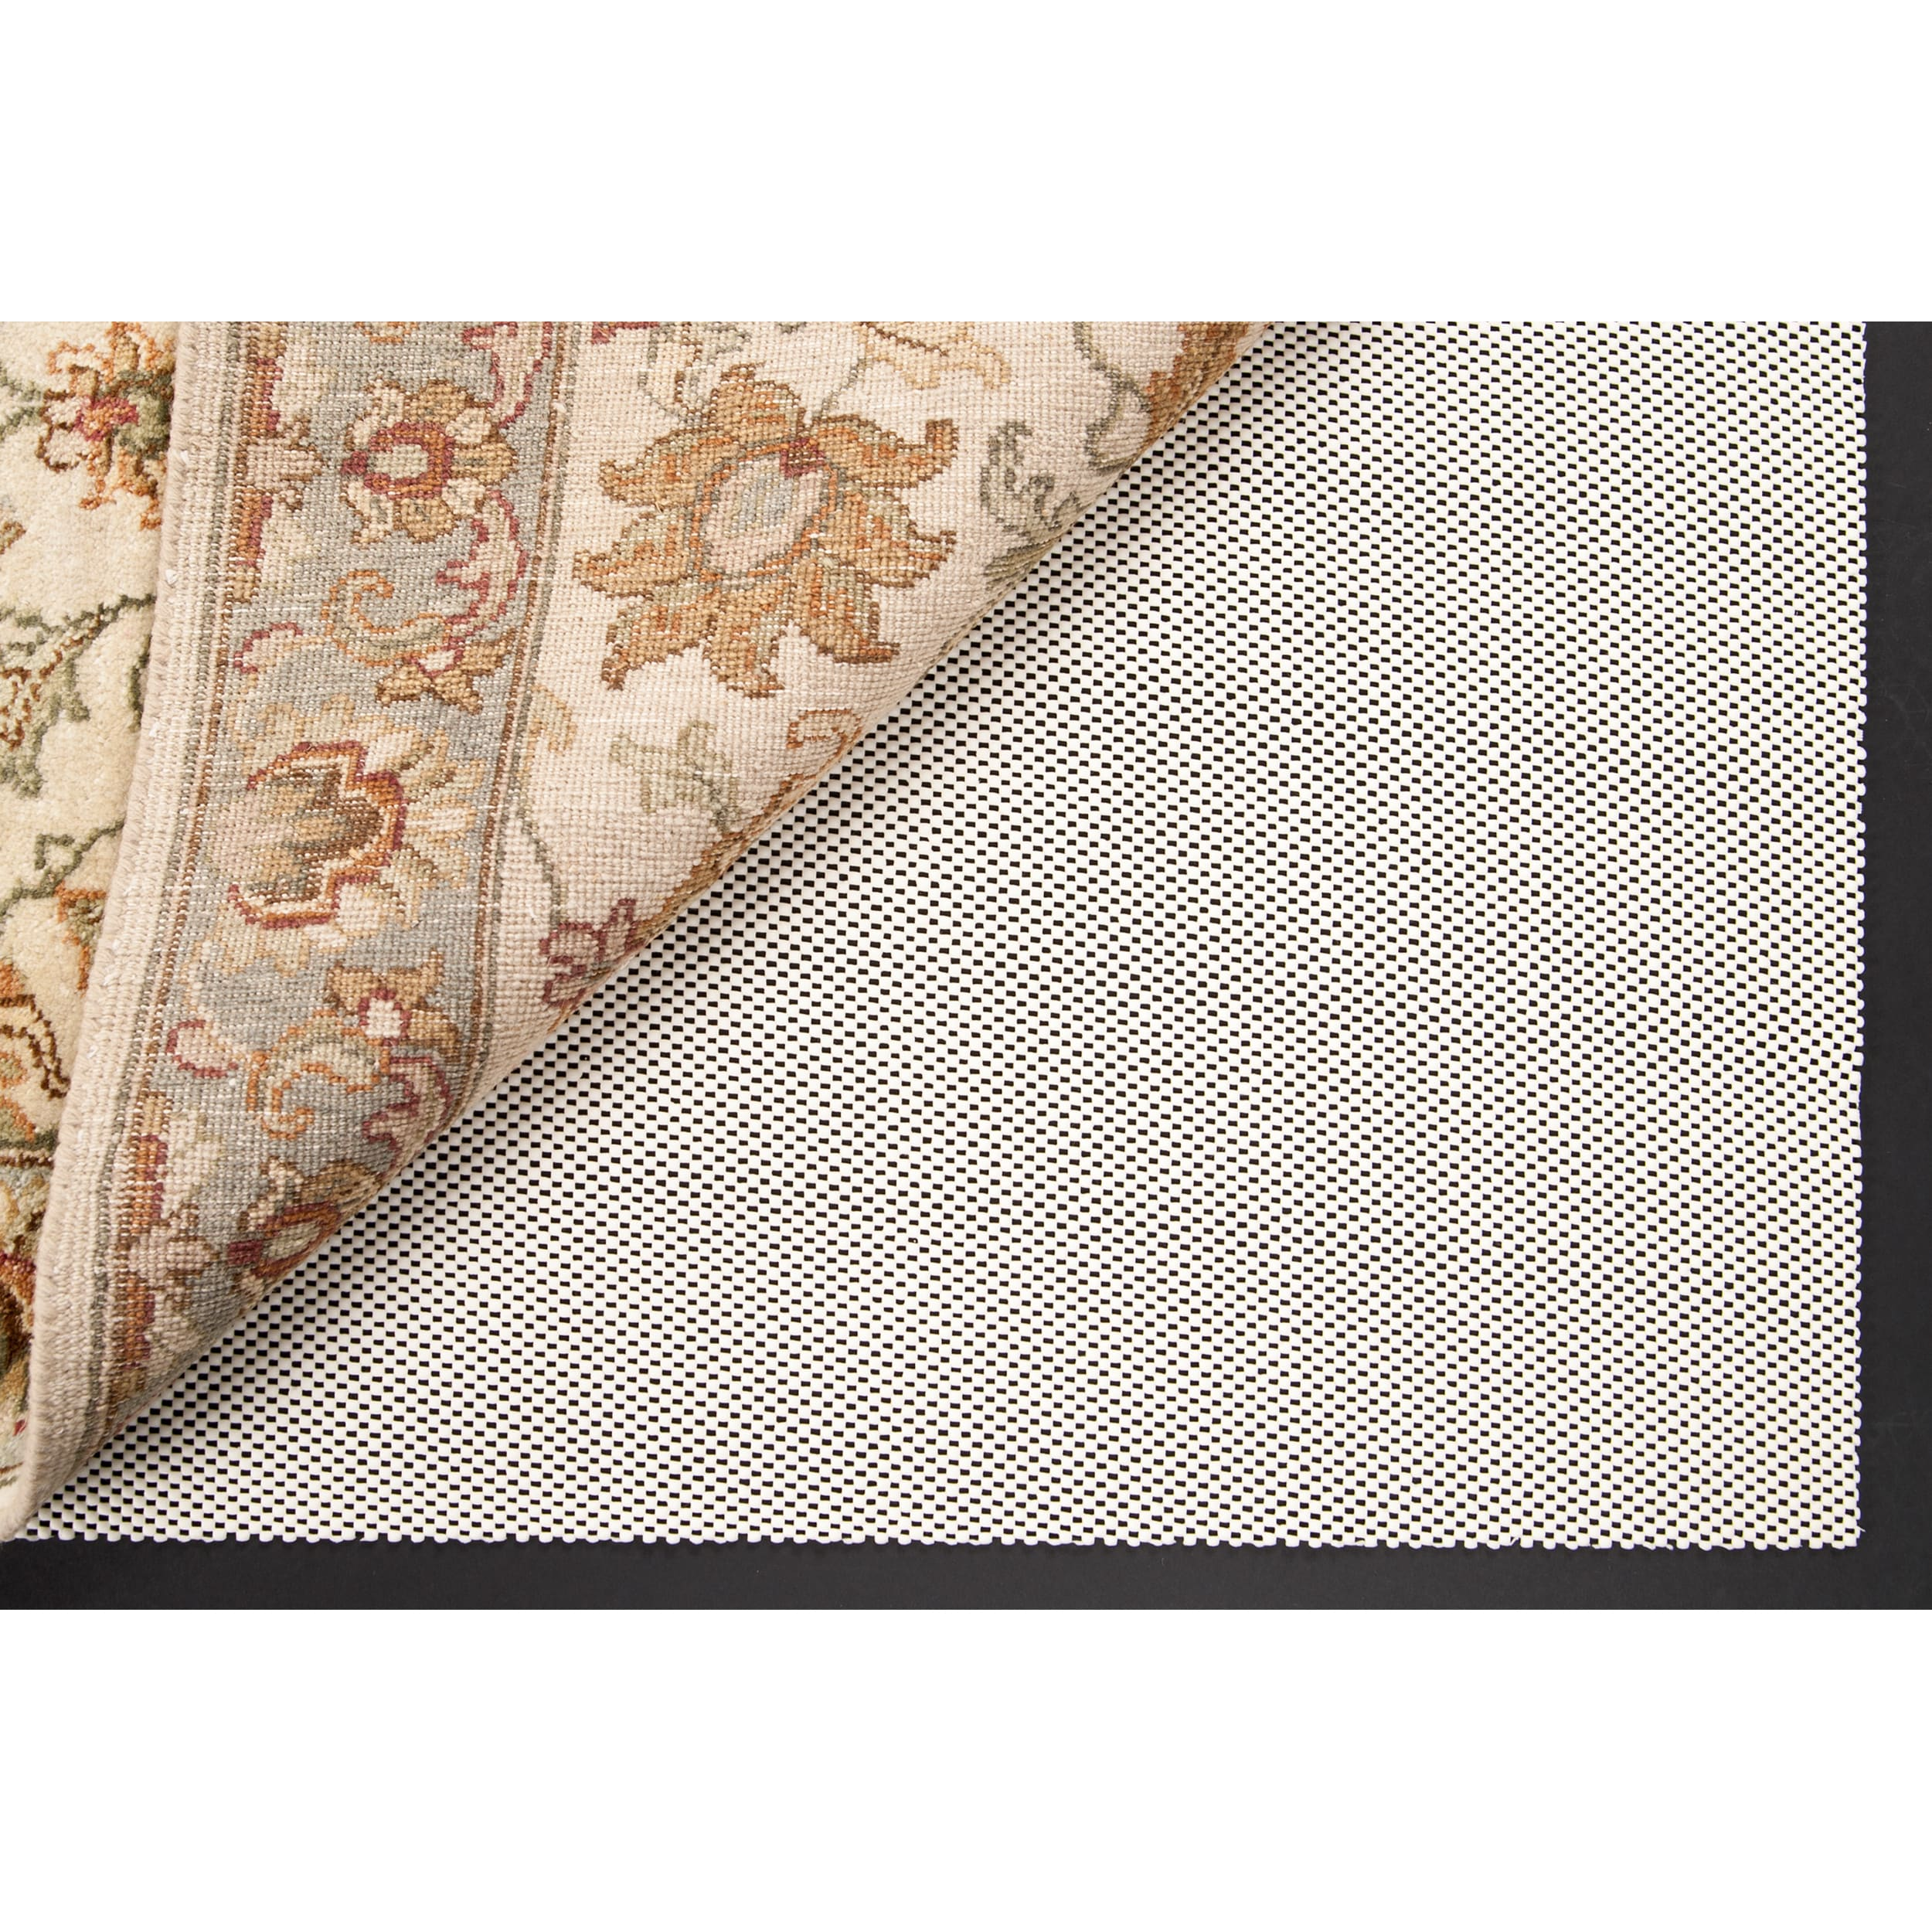 What Size Rug Pad For 8x10 Rug - Rug Designs